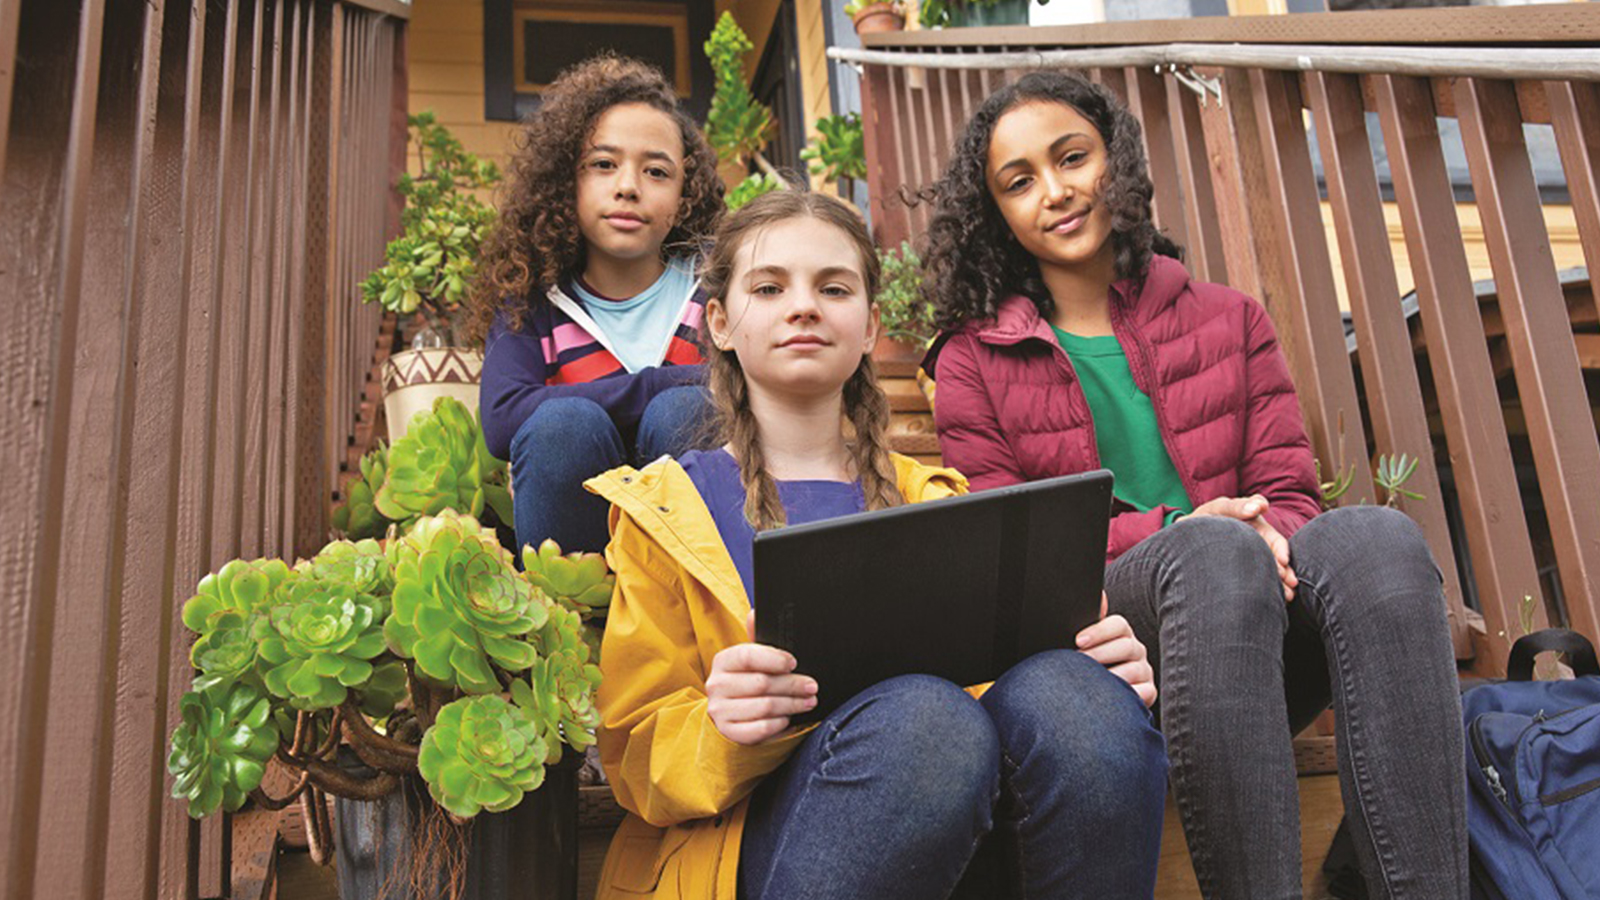 three girls sitting on steps looking at a laptop.